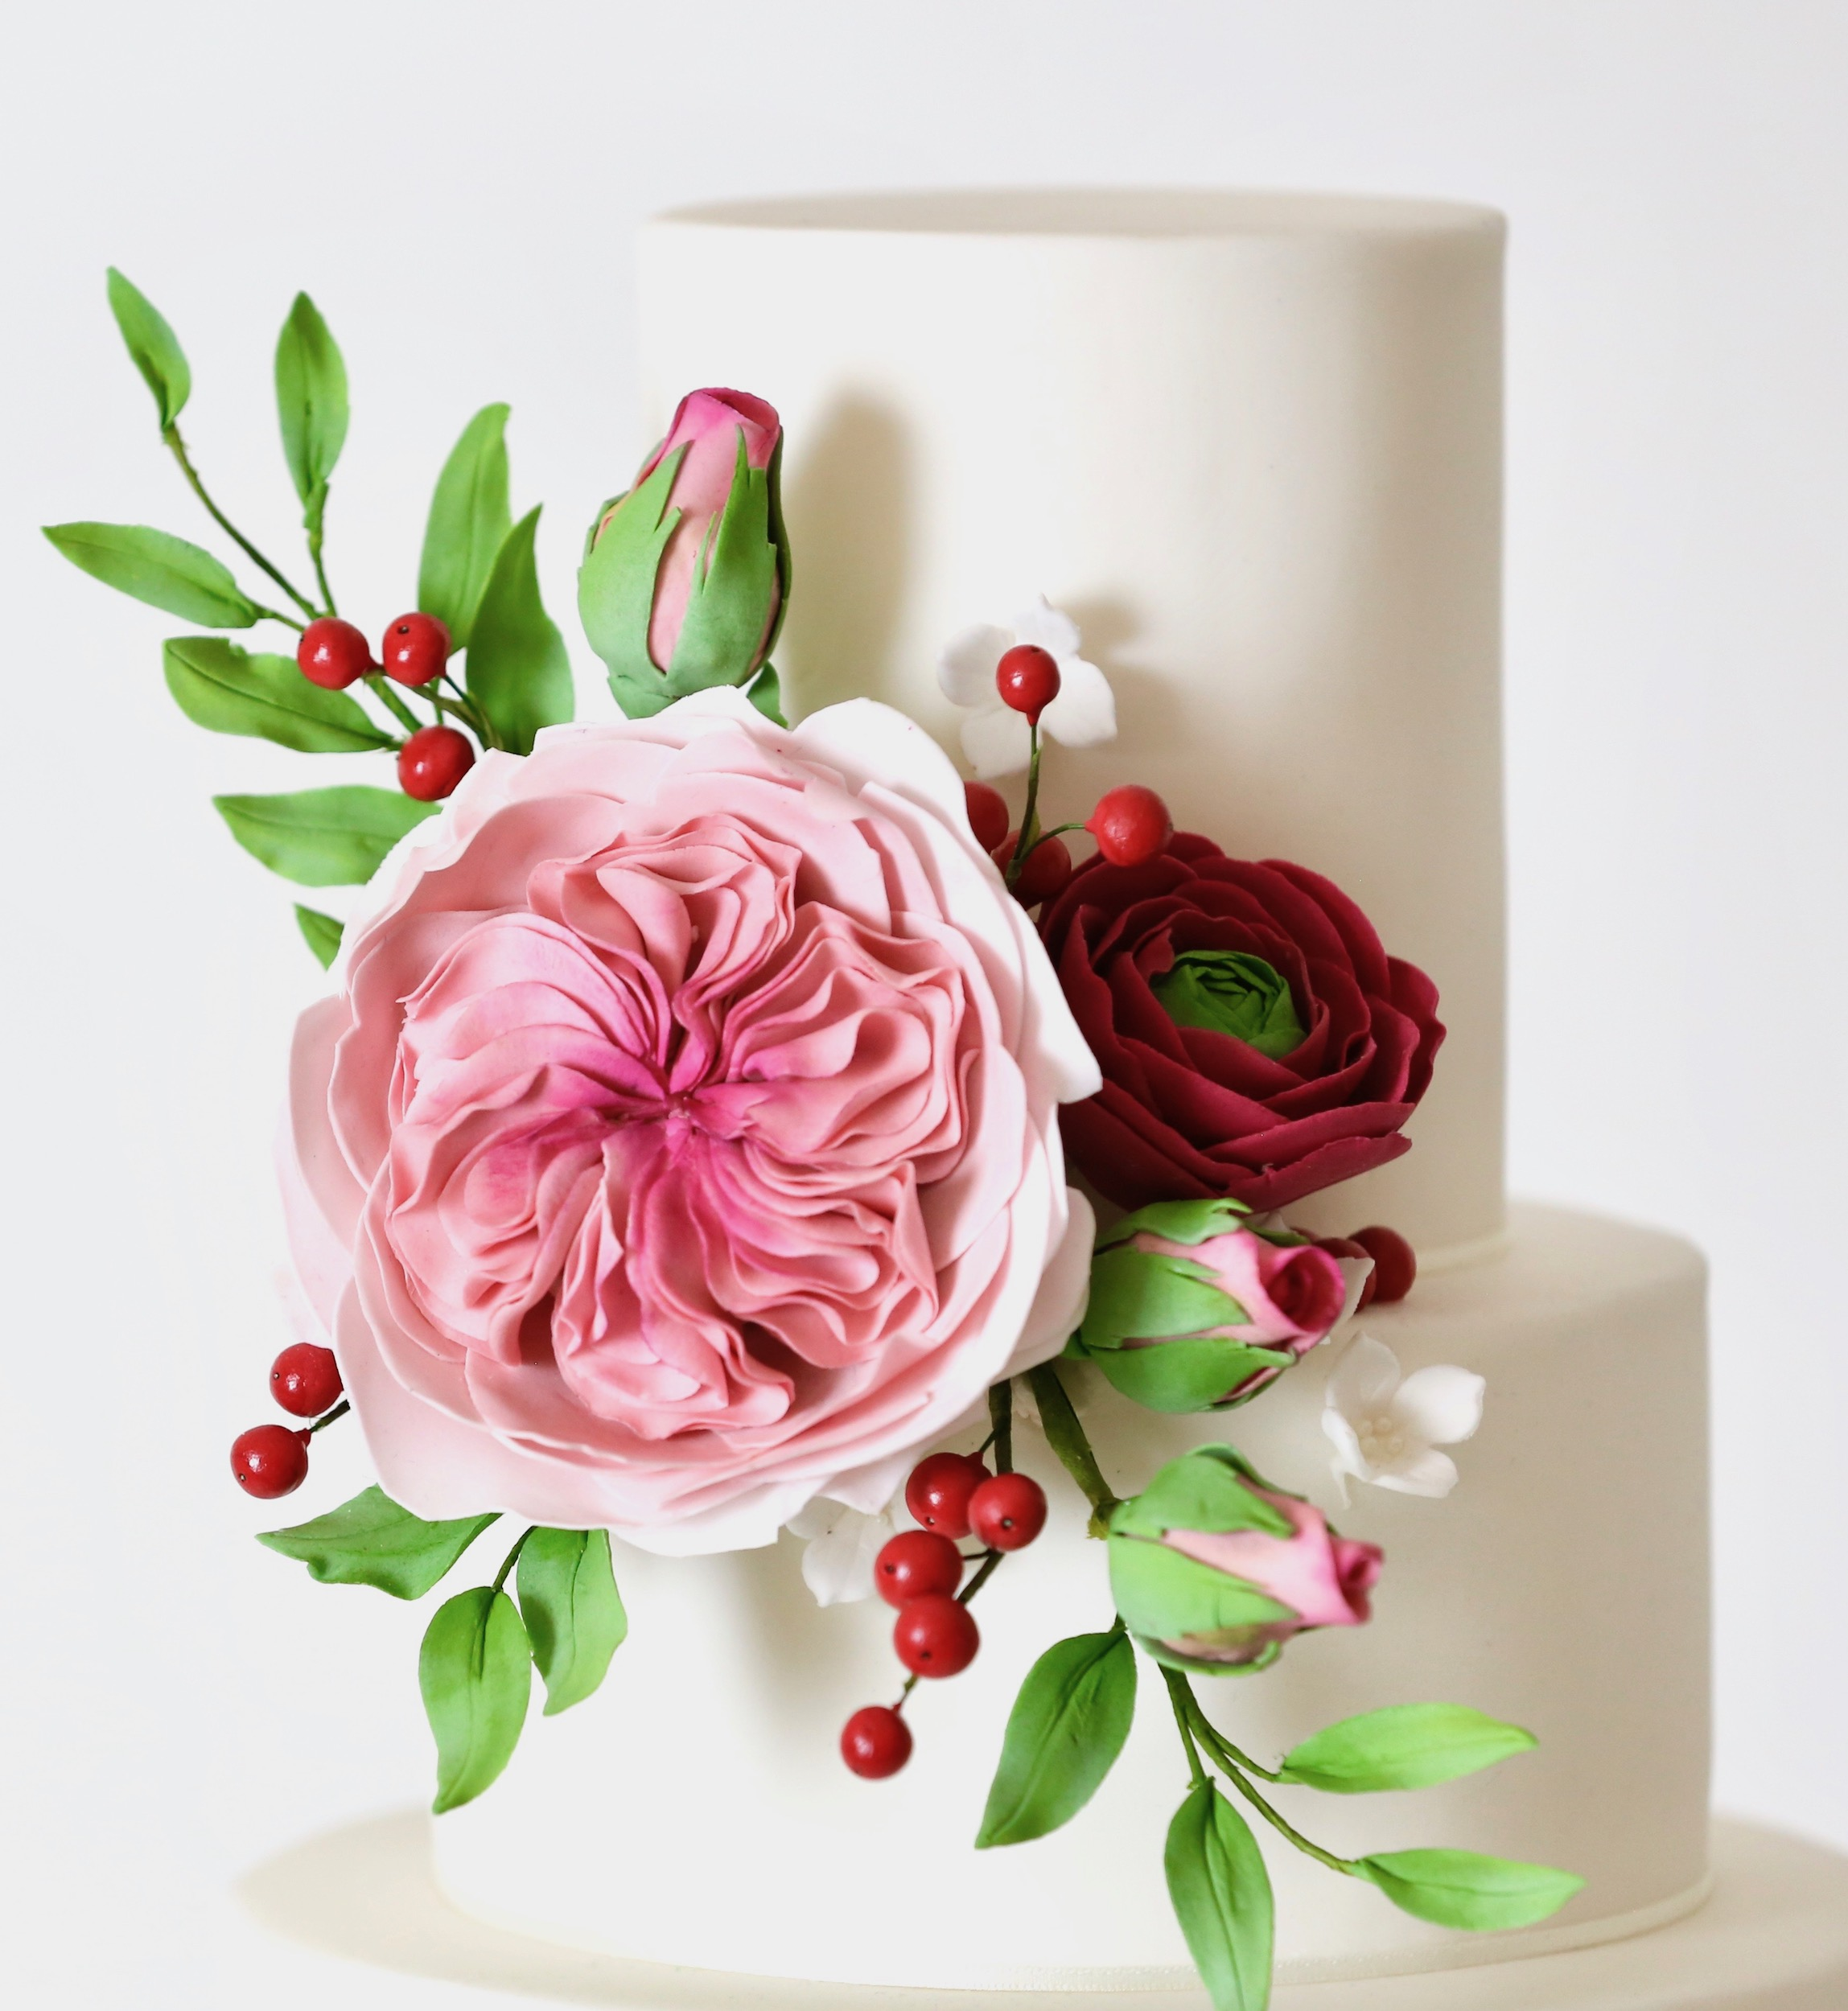 cake decorating class near me Archives - Tasteful Cakes By ...